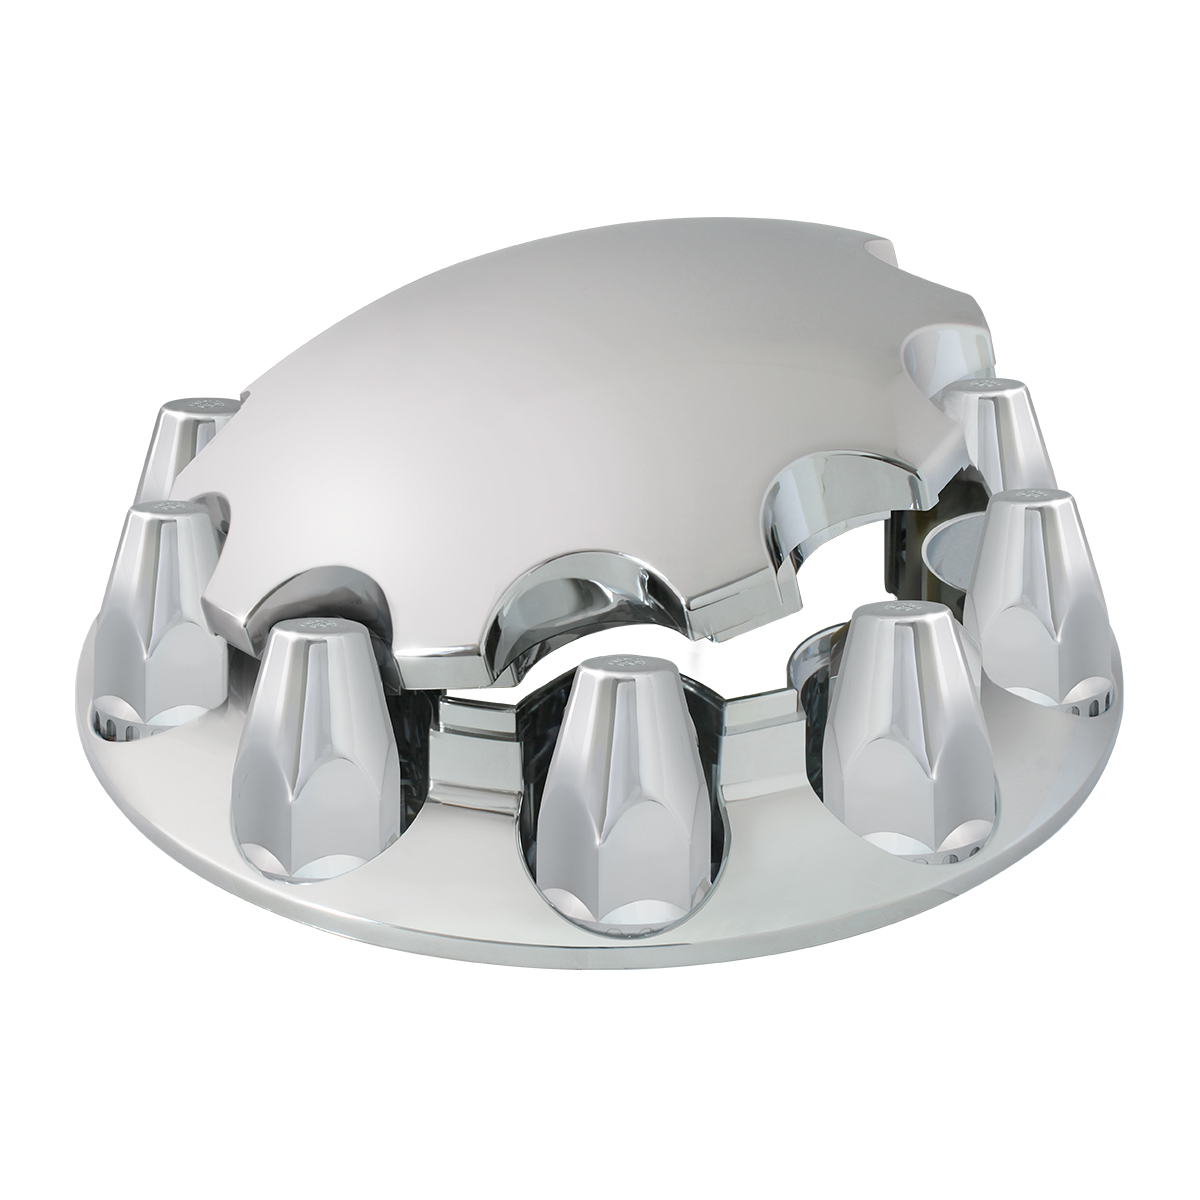 40180 Chrome Plastic ABS Front Axle Cover Set with Locking Tabs & Standard Hub Cap